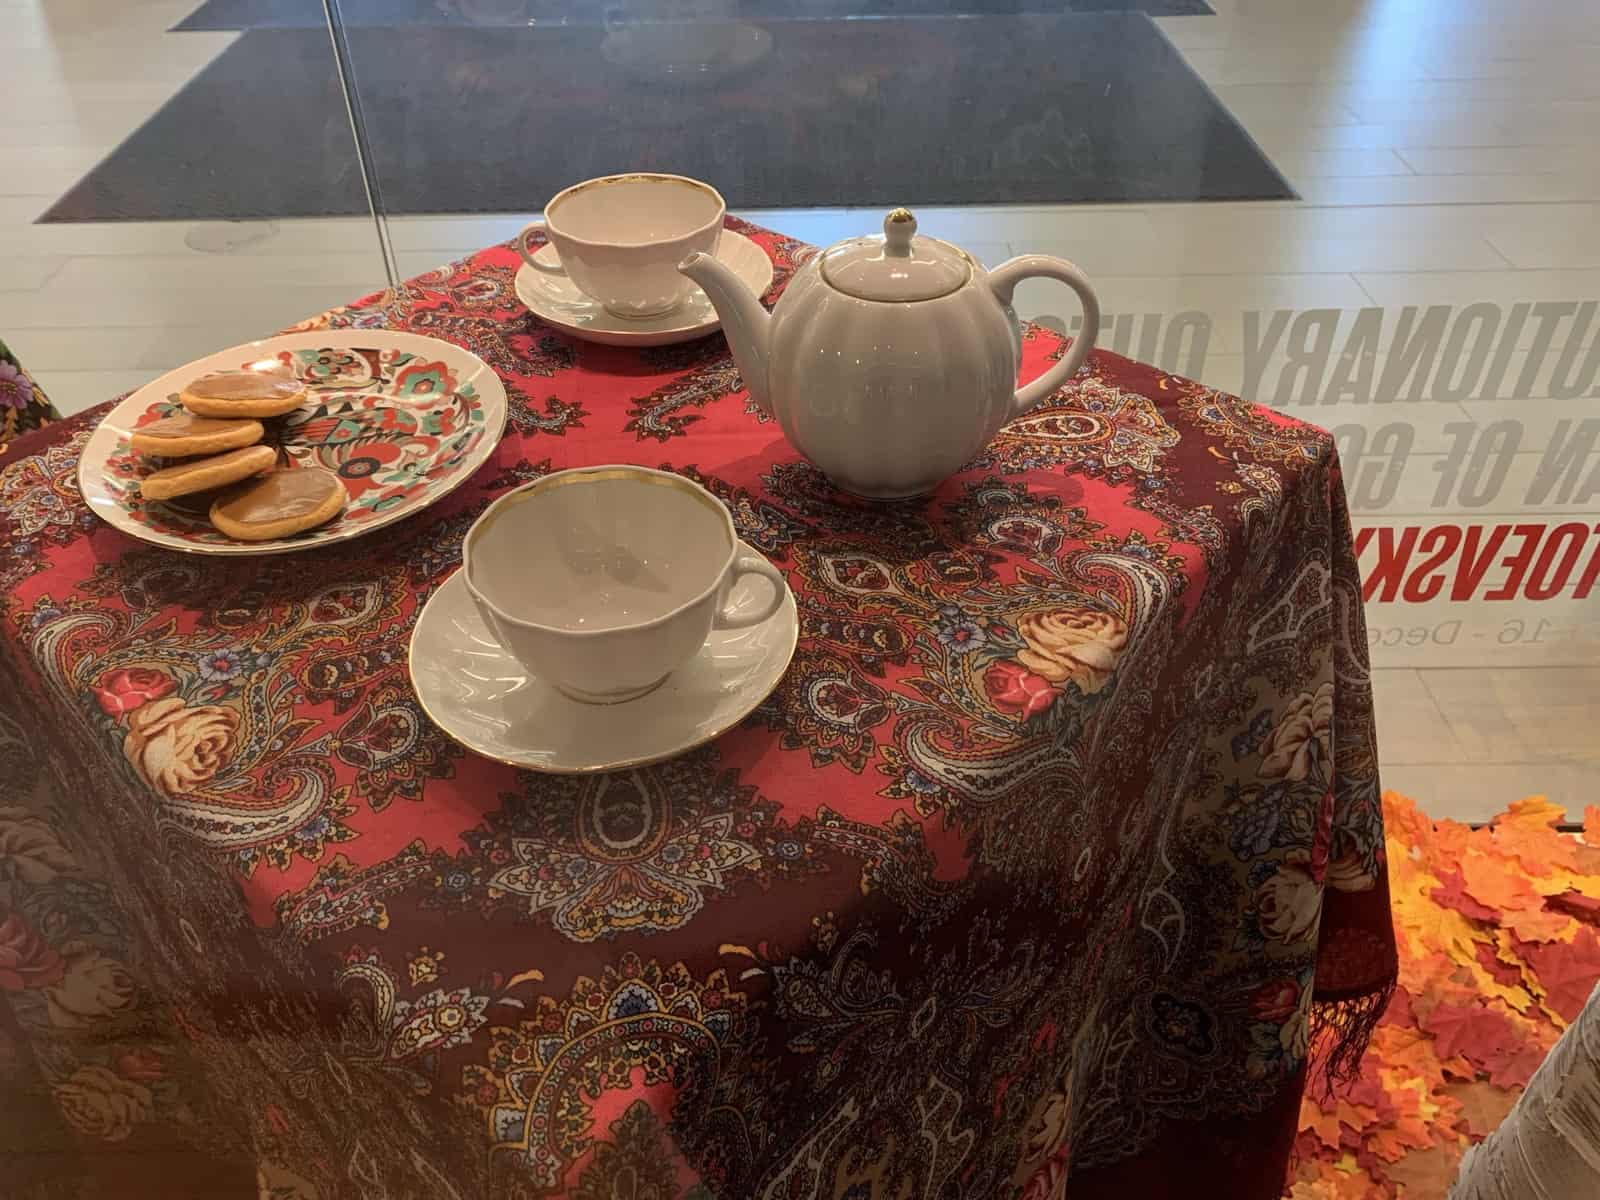 A table draped with Russian scarves sits on a bed of fallen maple leaves. On the table are two white teacups with saucers, a small white teapot, and a plate decorated with an ornate folk-style rooster. Four small faux pancakes are on the plate.